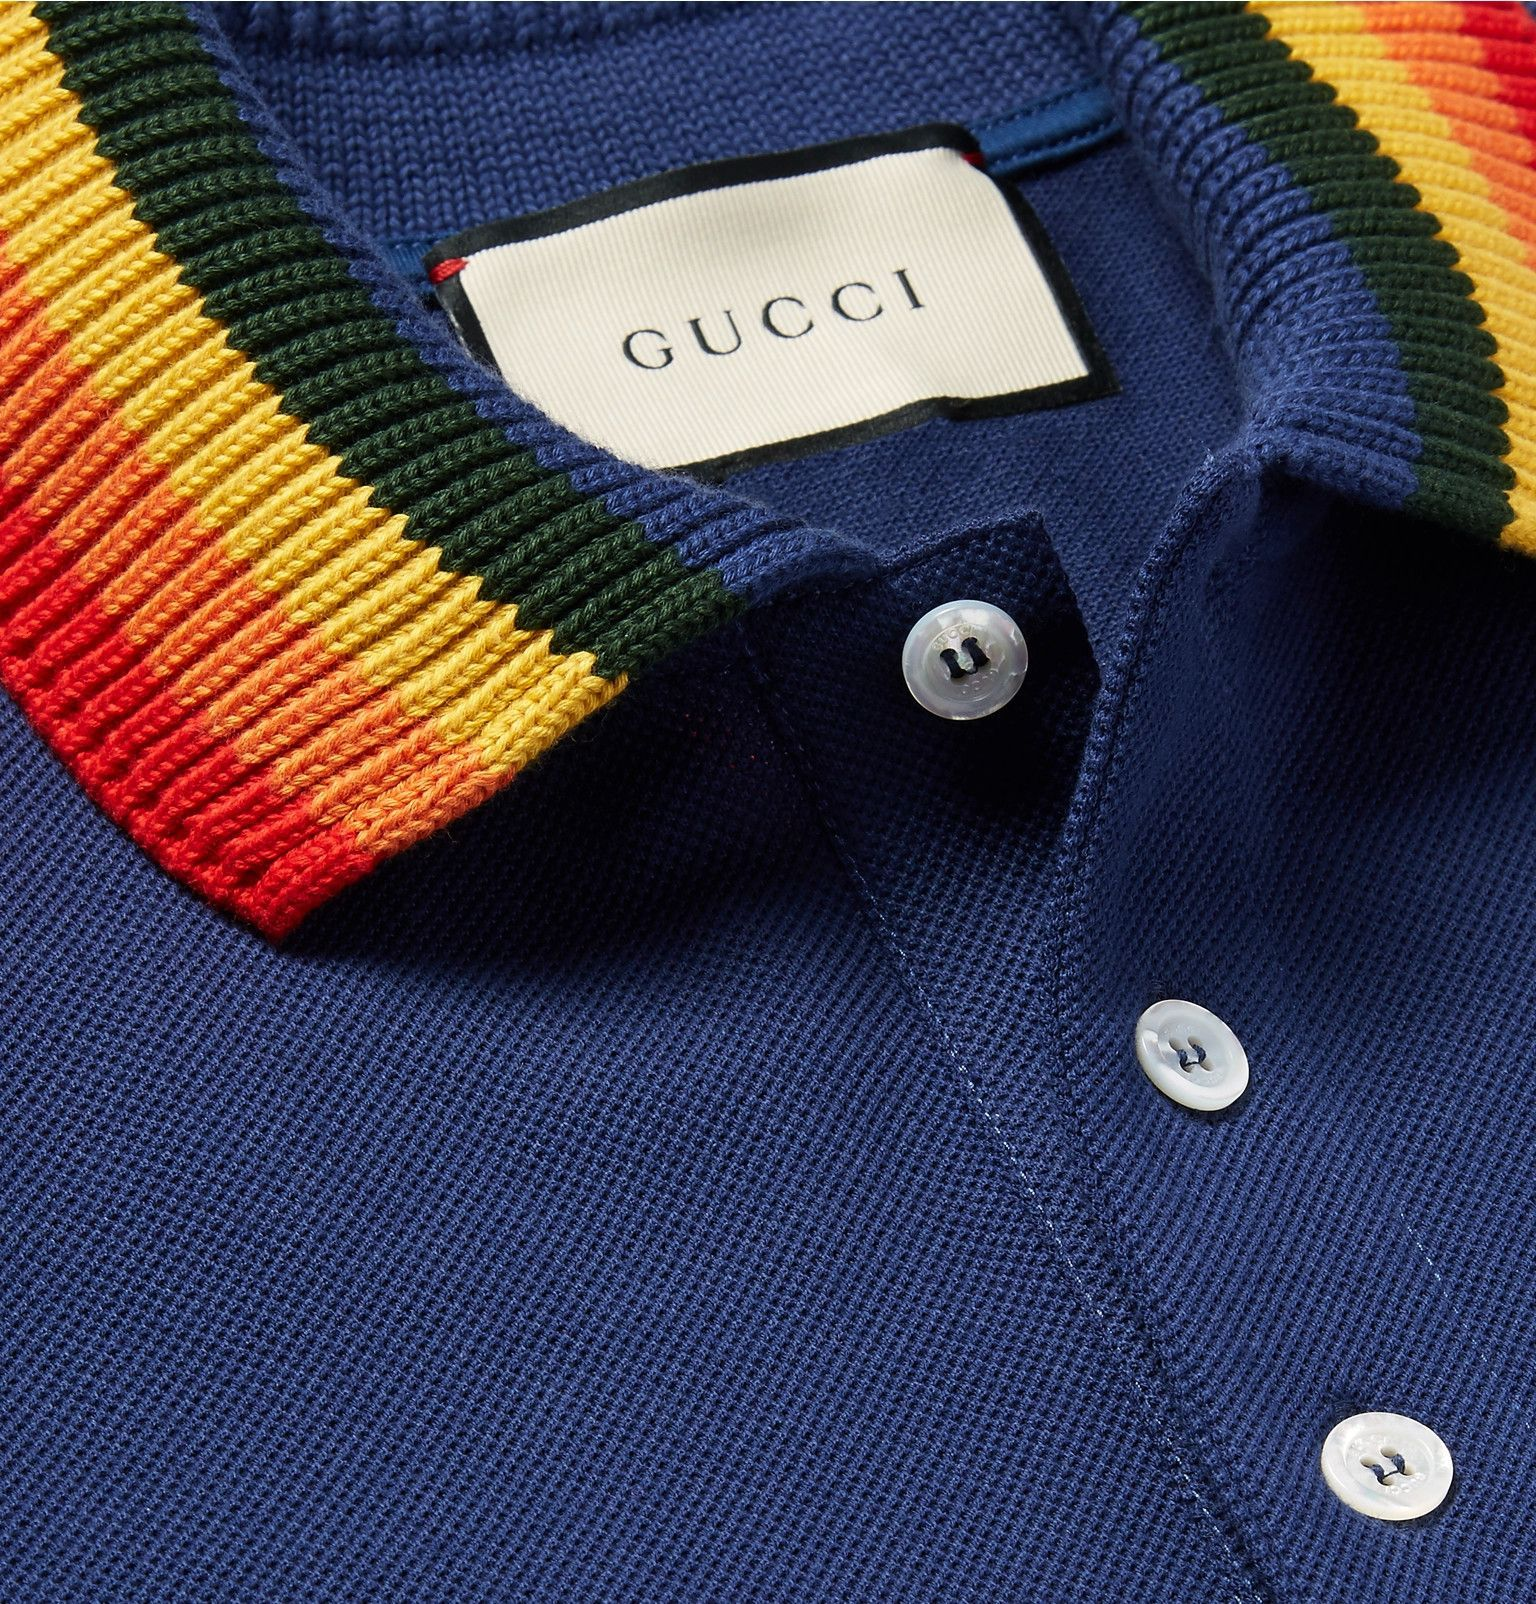 5f0d1bc13ee6 This Gucci polo shirt has a contrasting knitted collar in bold rainbow  stripes. It's been